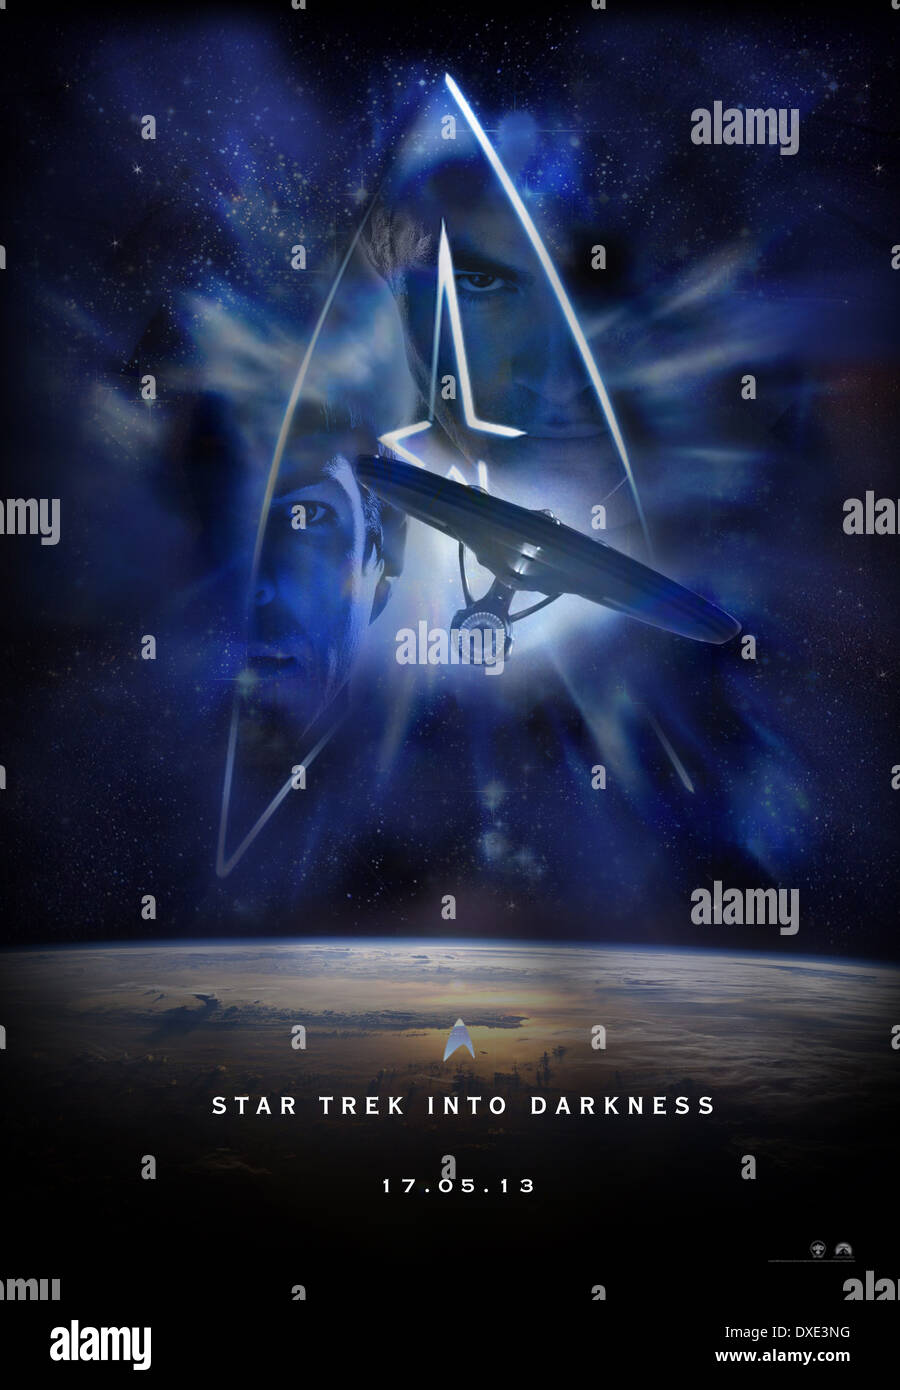 Star Trek Into Darkness - Stock Image